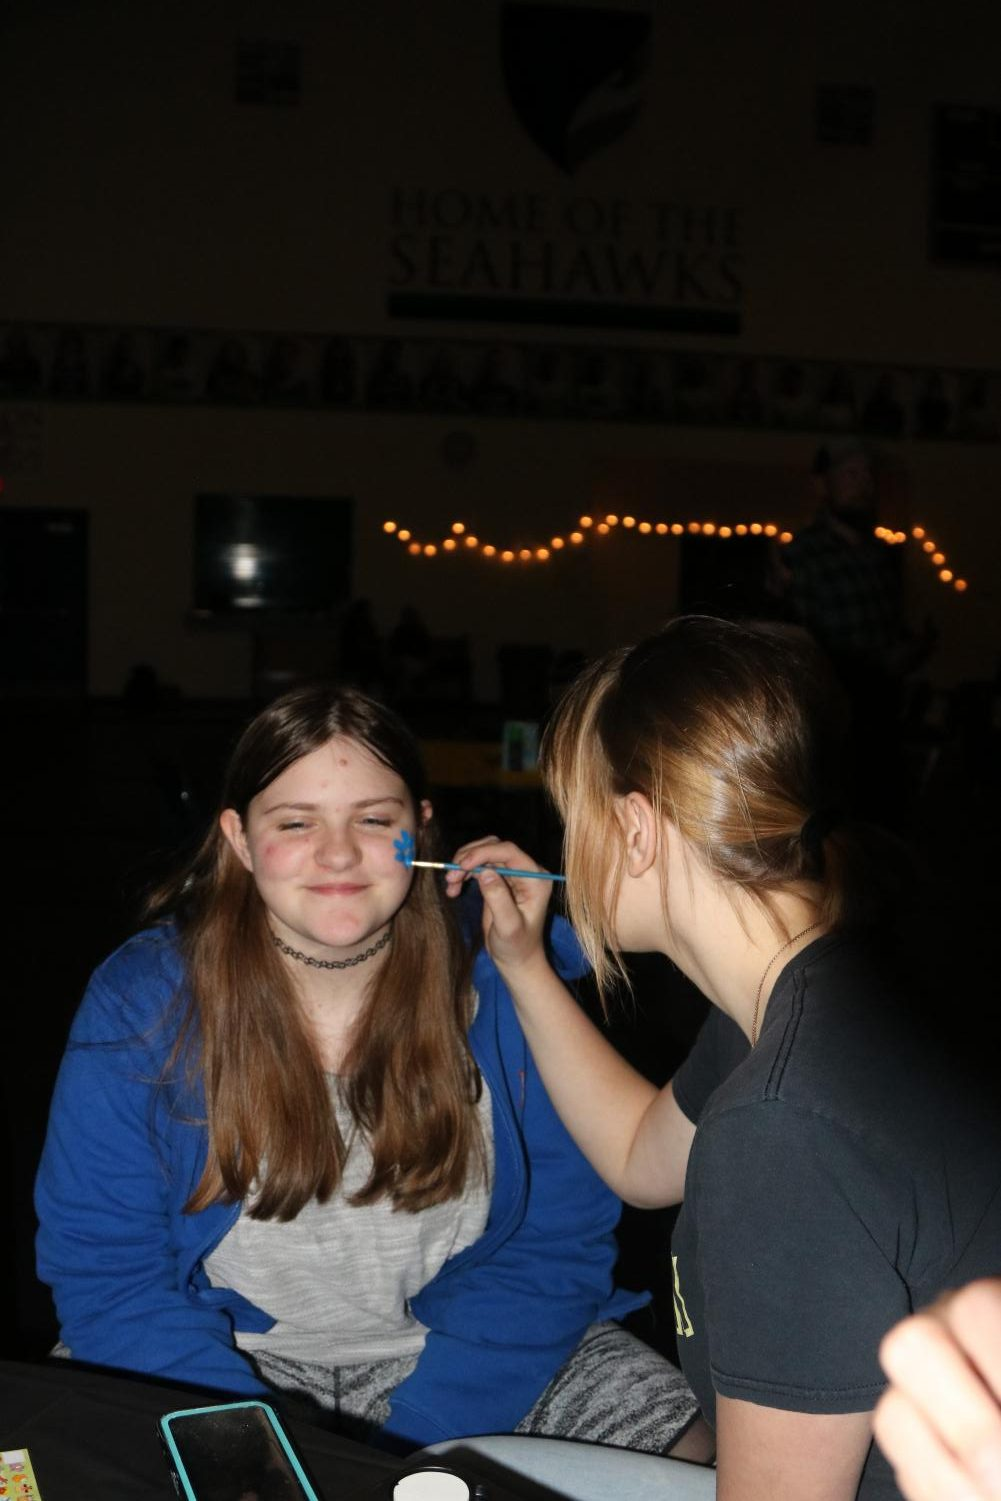 Alesia Brovtcnya paints Elizabeth Allen face during Carnival. Carnival this year was held in the gym.